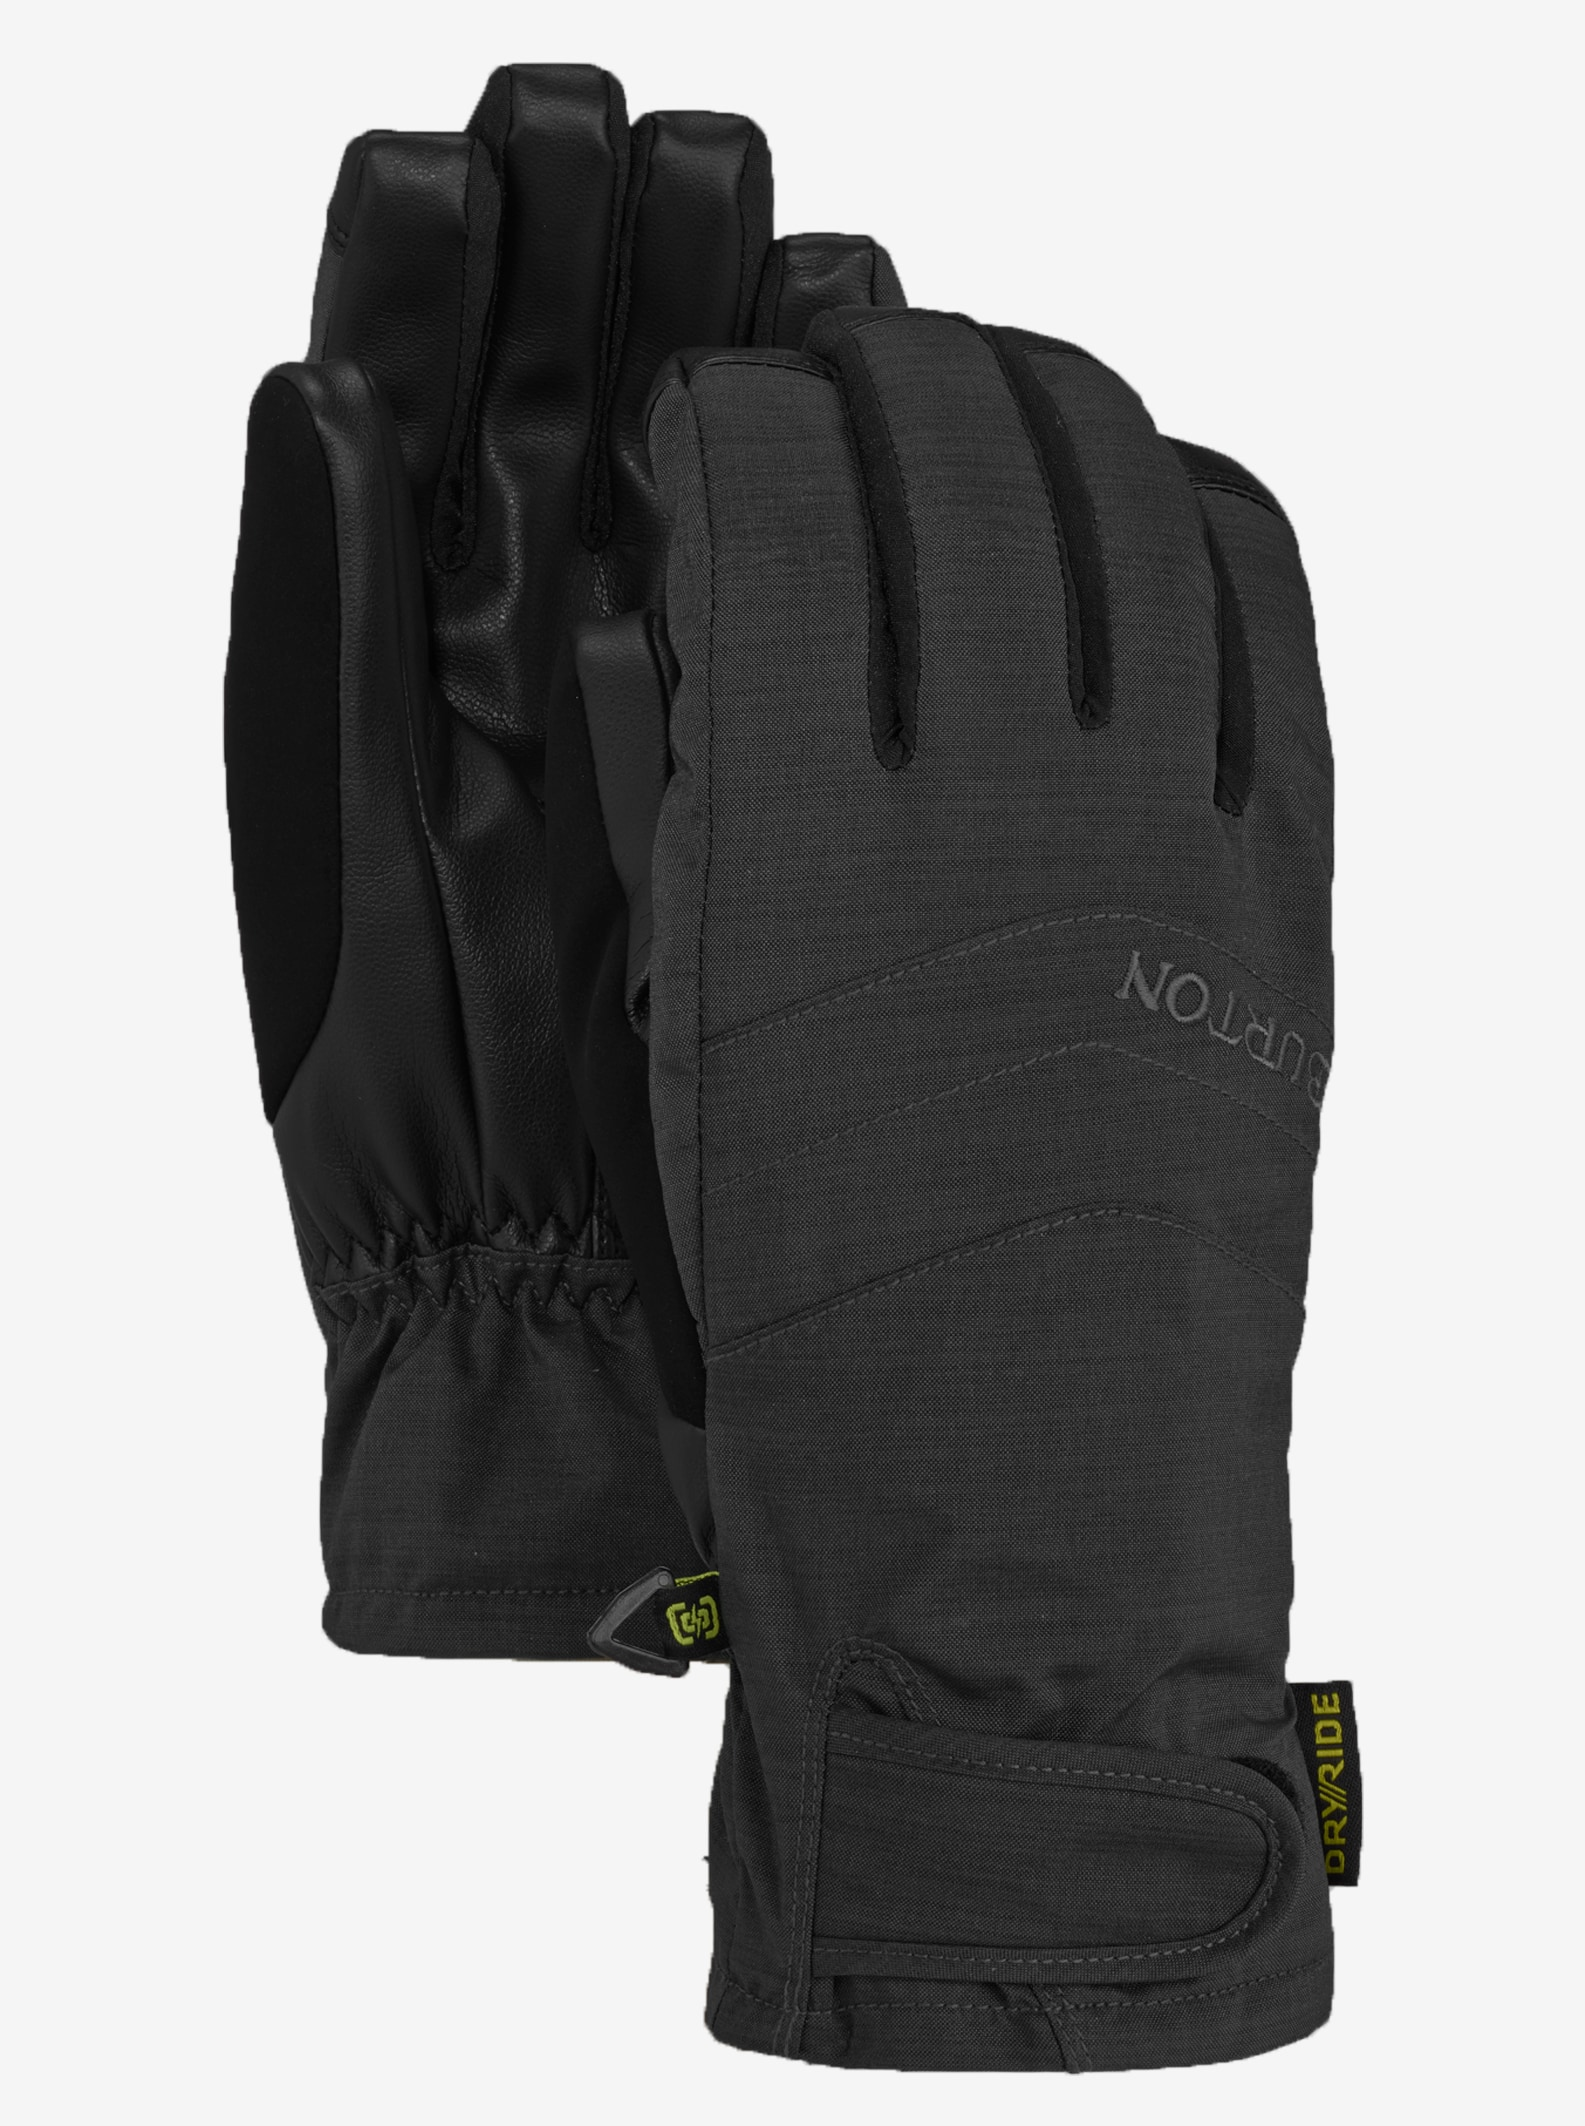 Women's Burton Prospect Under Glove shown in True Black